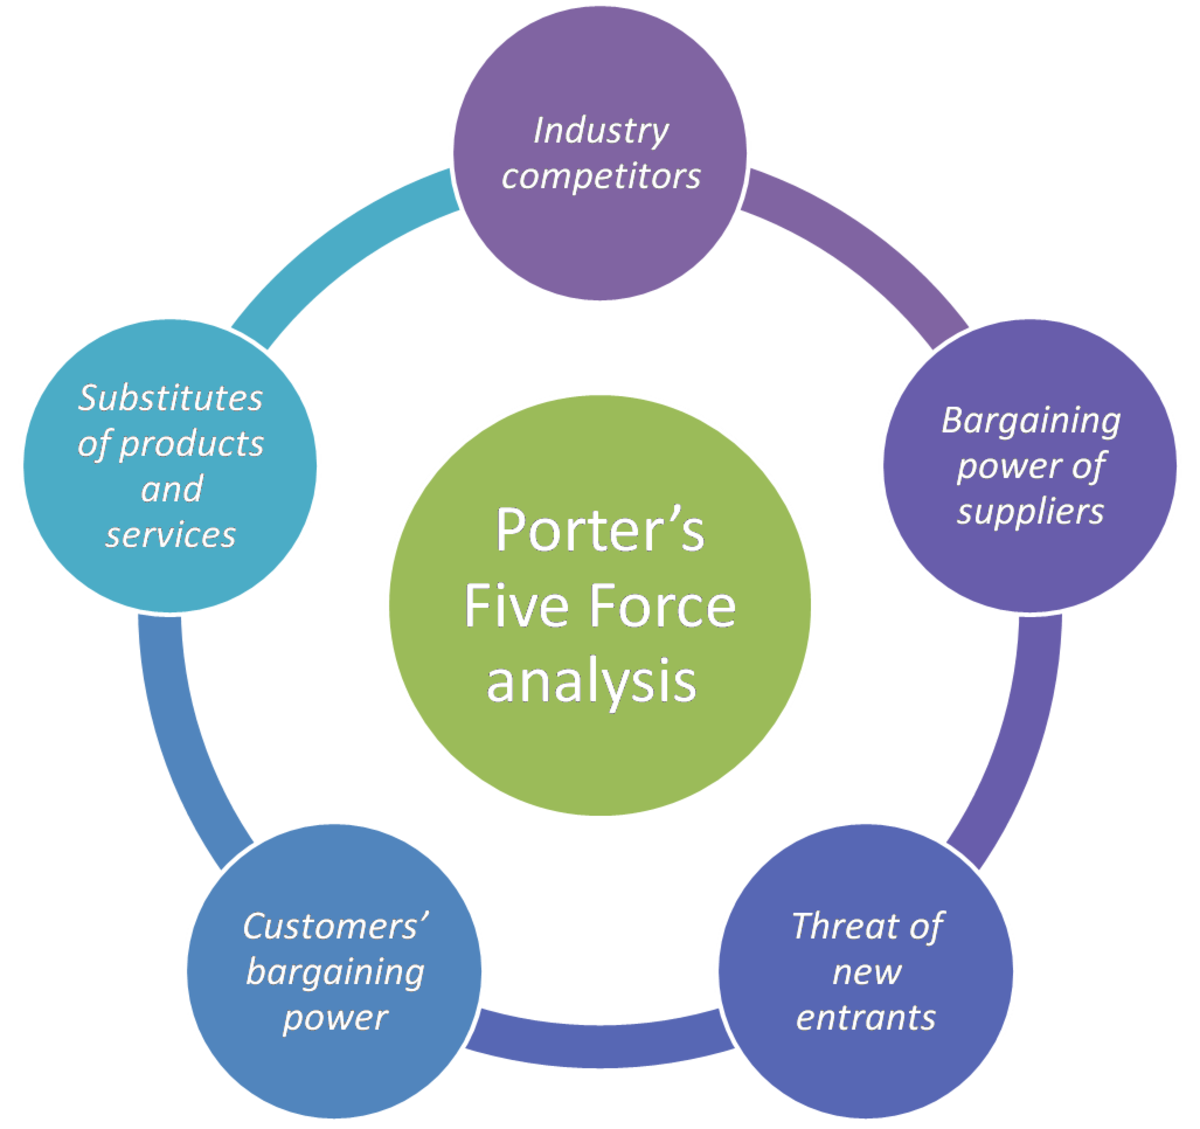 Porter's Five Force analysis